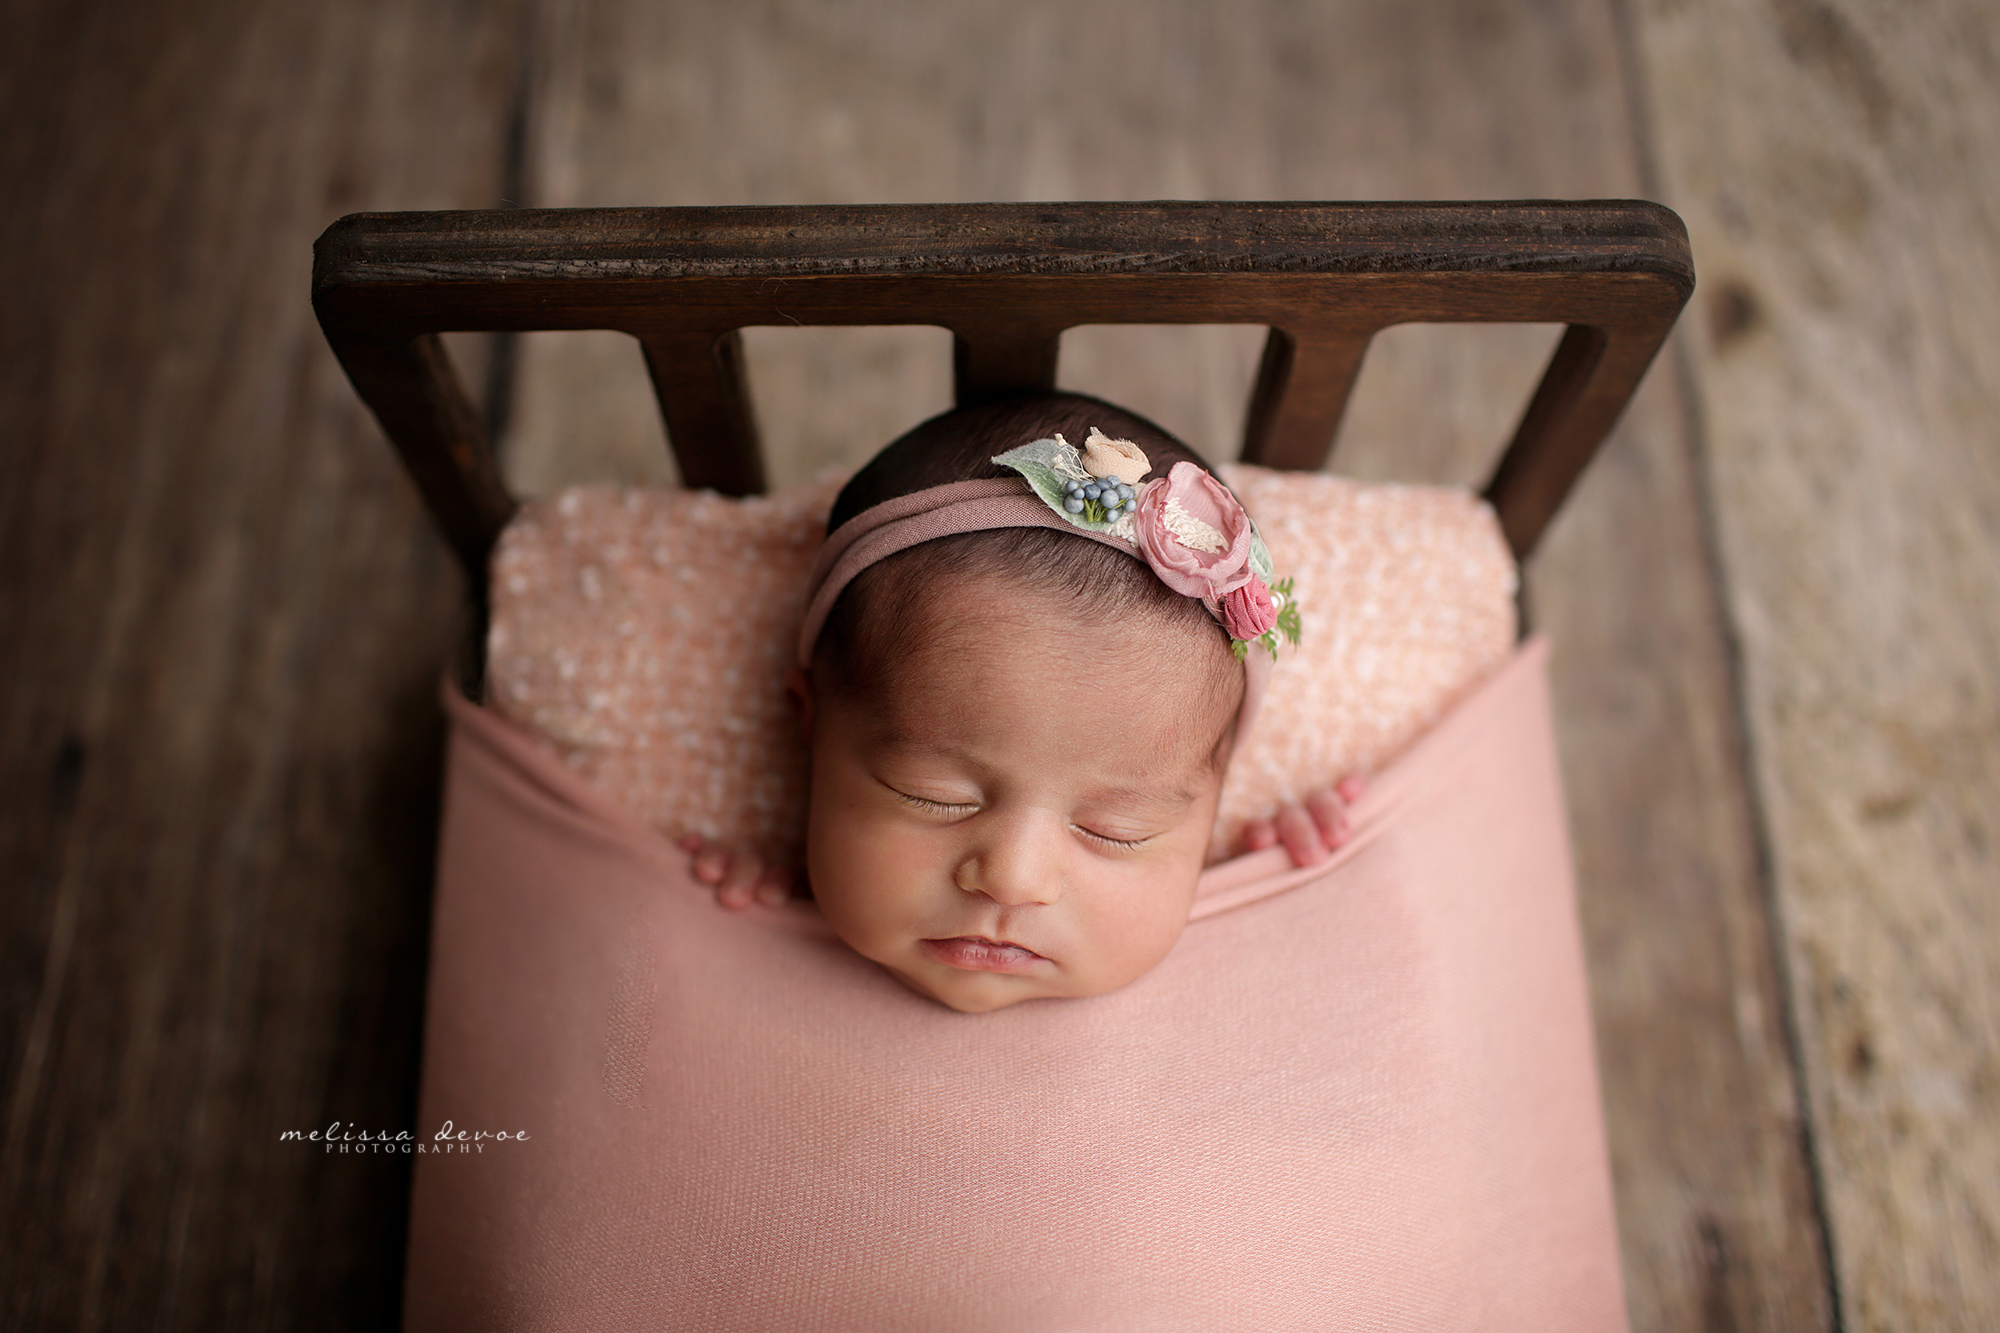 Newborn photography pose ideas